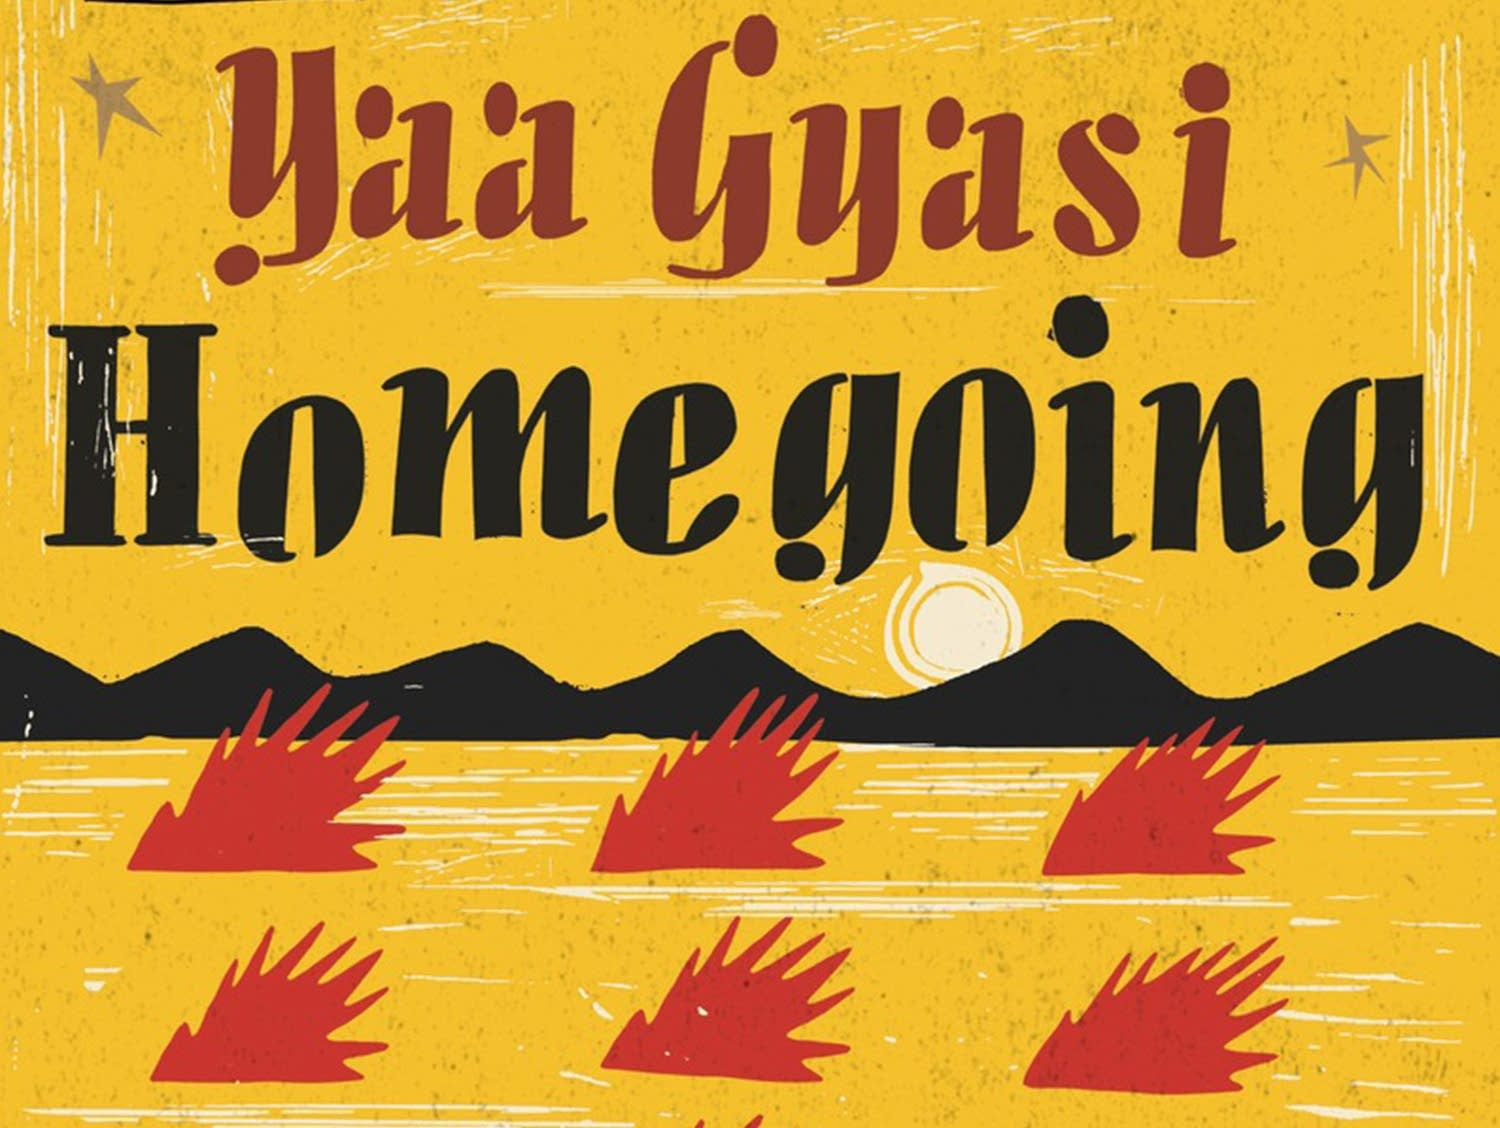 'Homegoing' by Yaa Gyasi